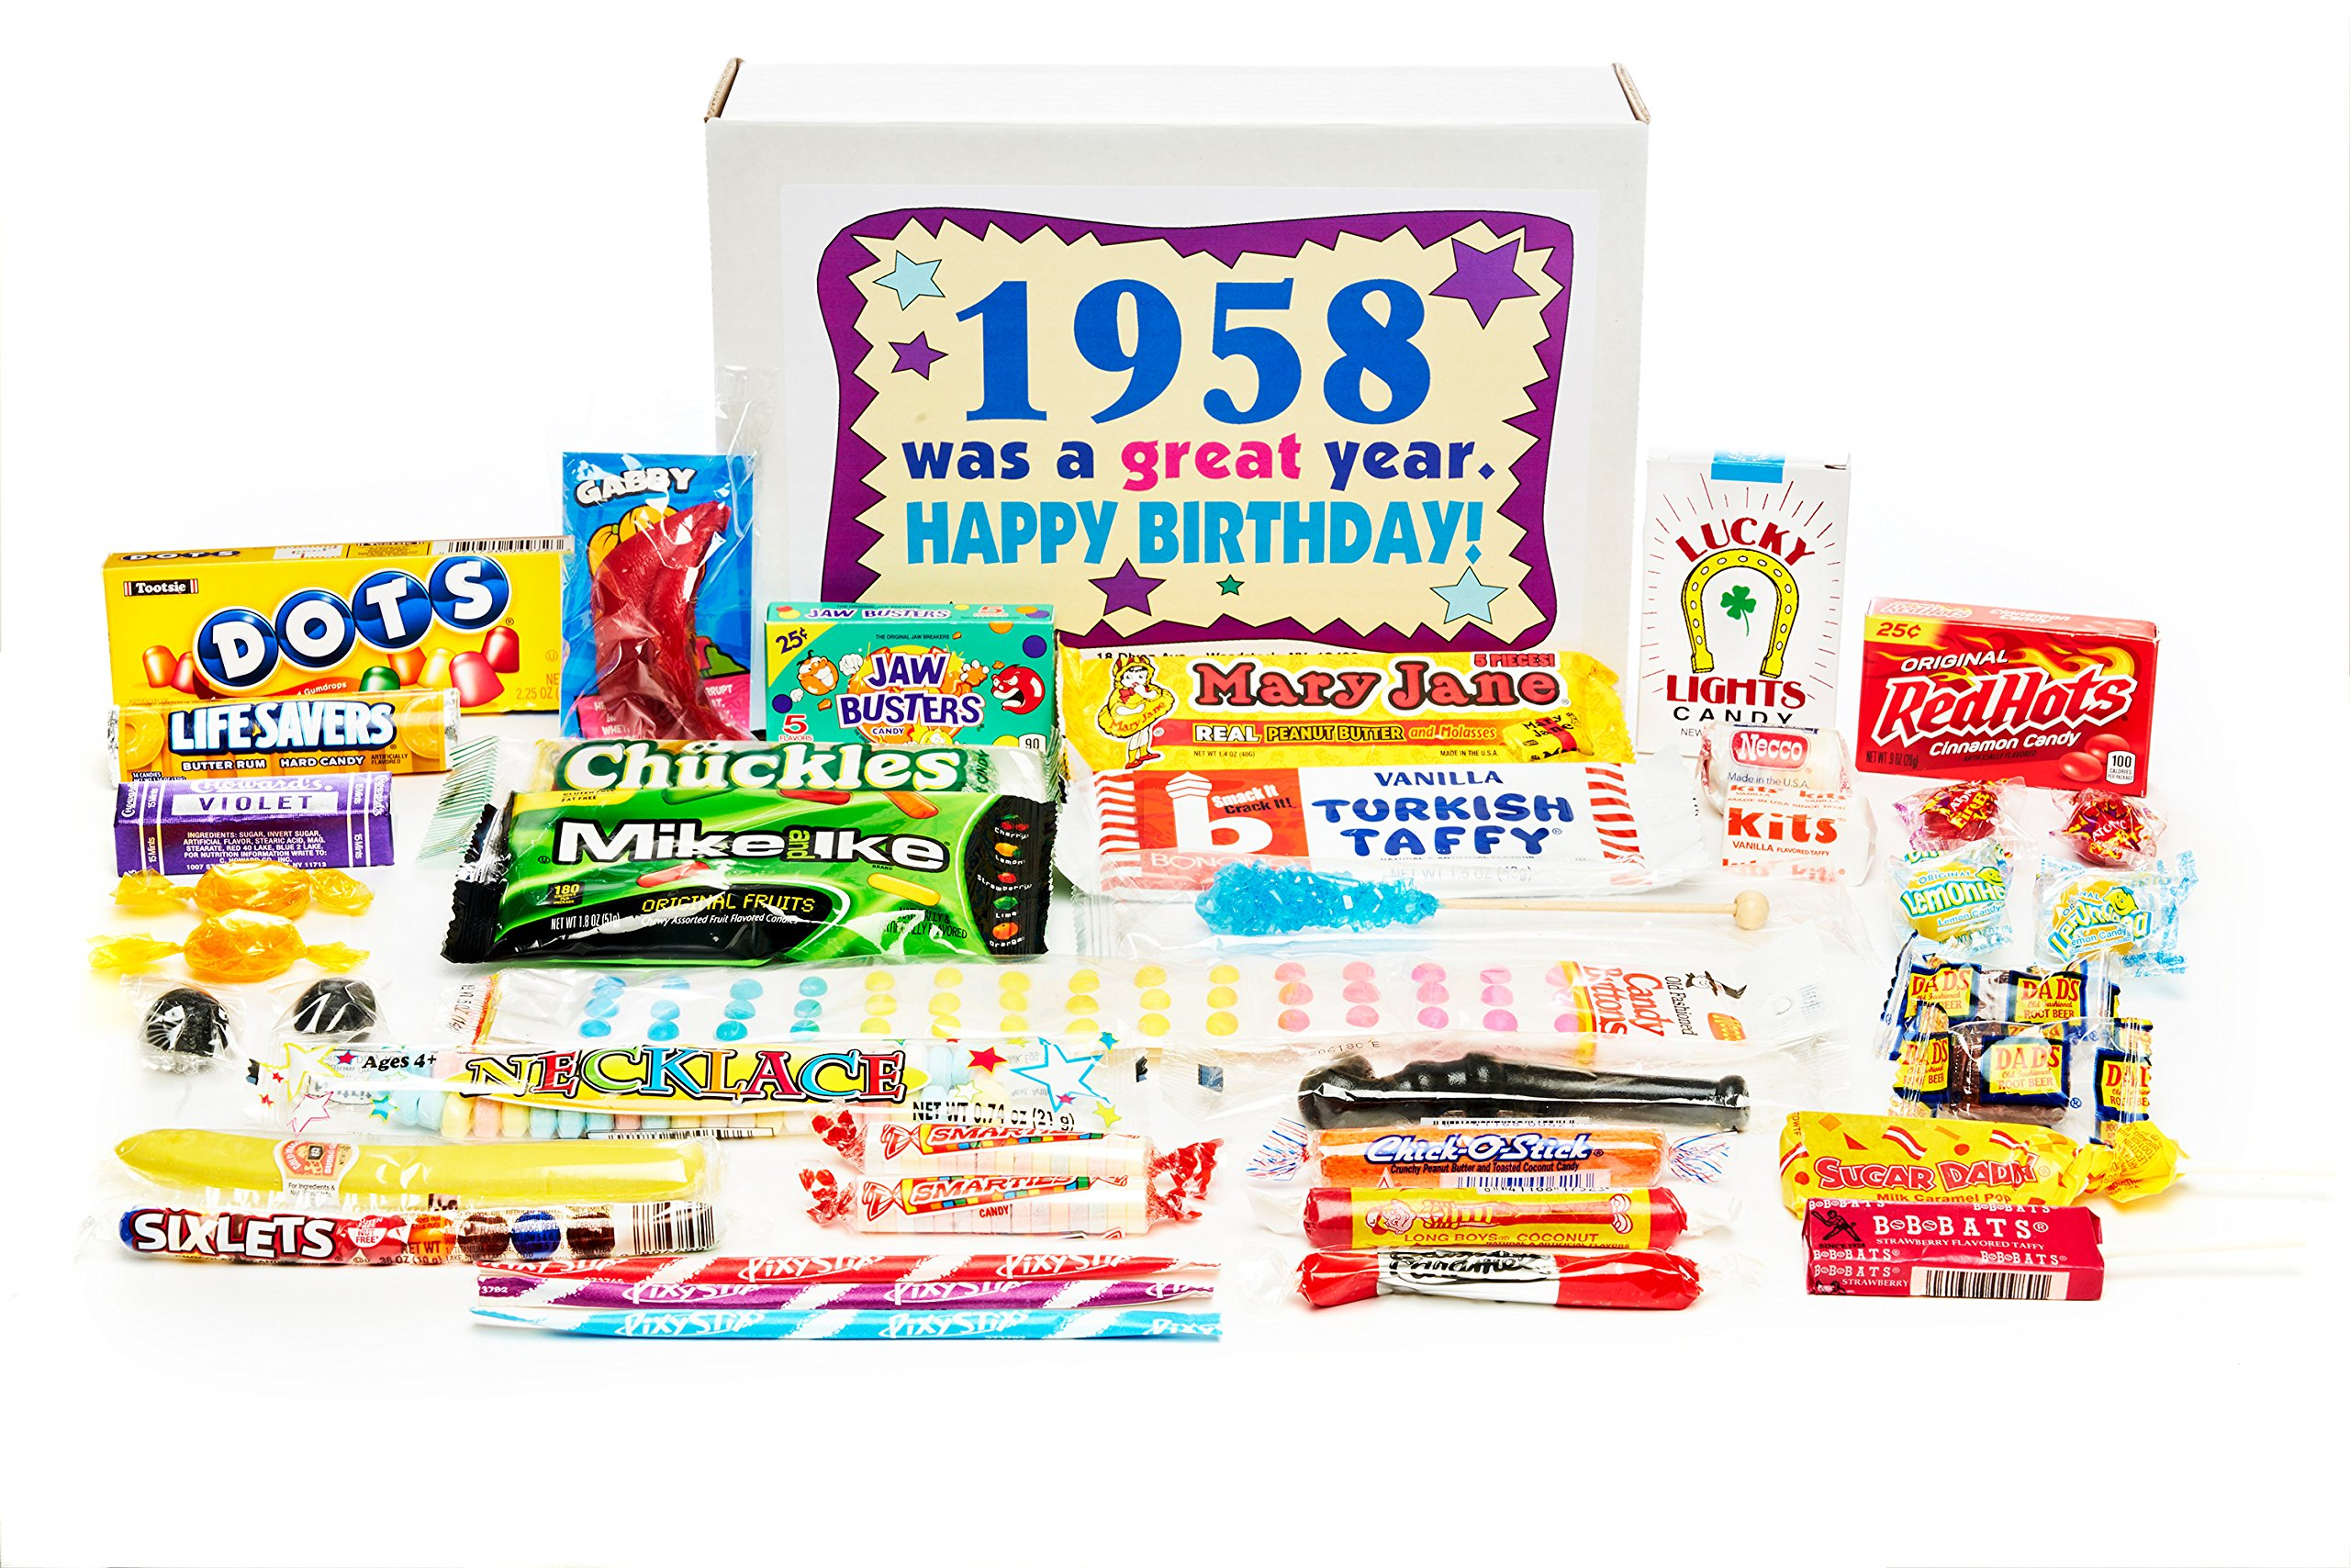 Amazon Woodstock Candy 1958 61st Birthday Gift Box Nostalgic Retro Mix From Childhood For 61 Year Old Man Or Woman Born Jr Grocery